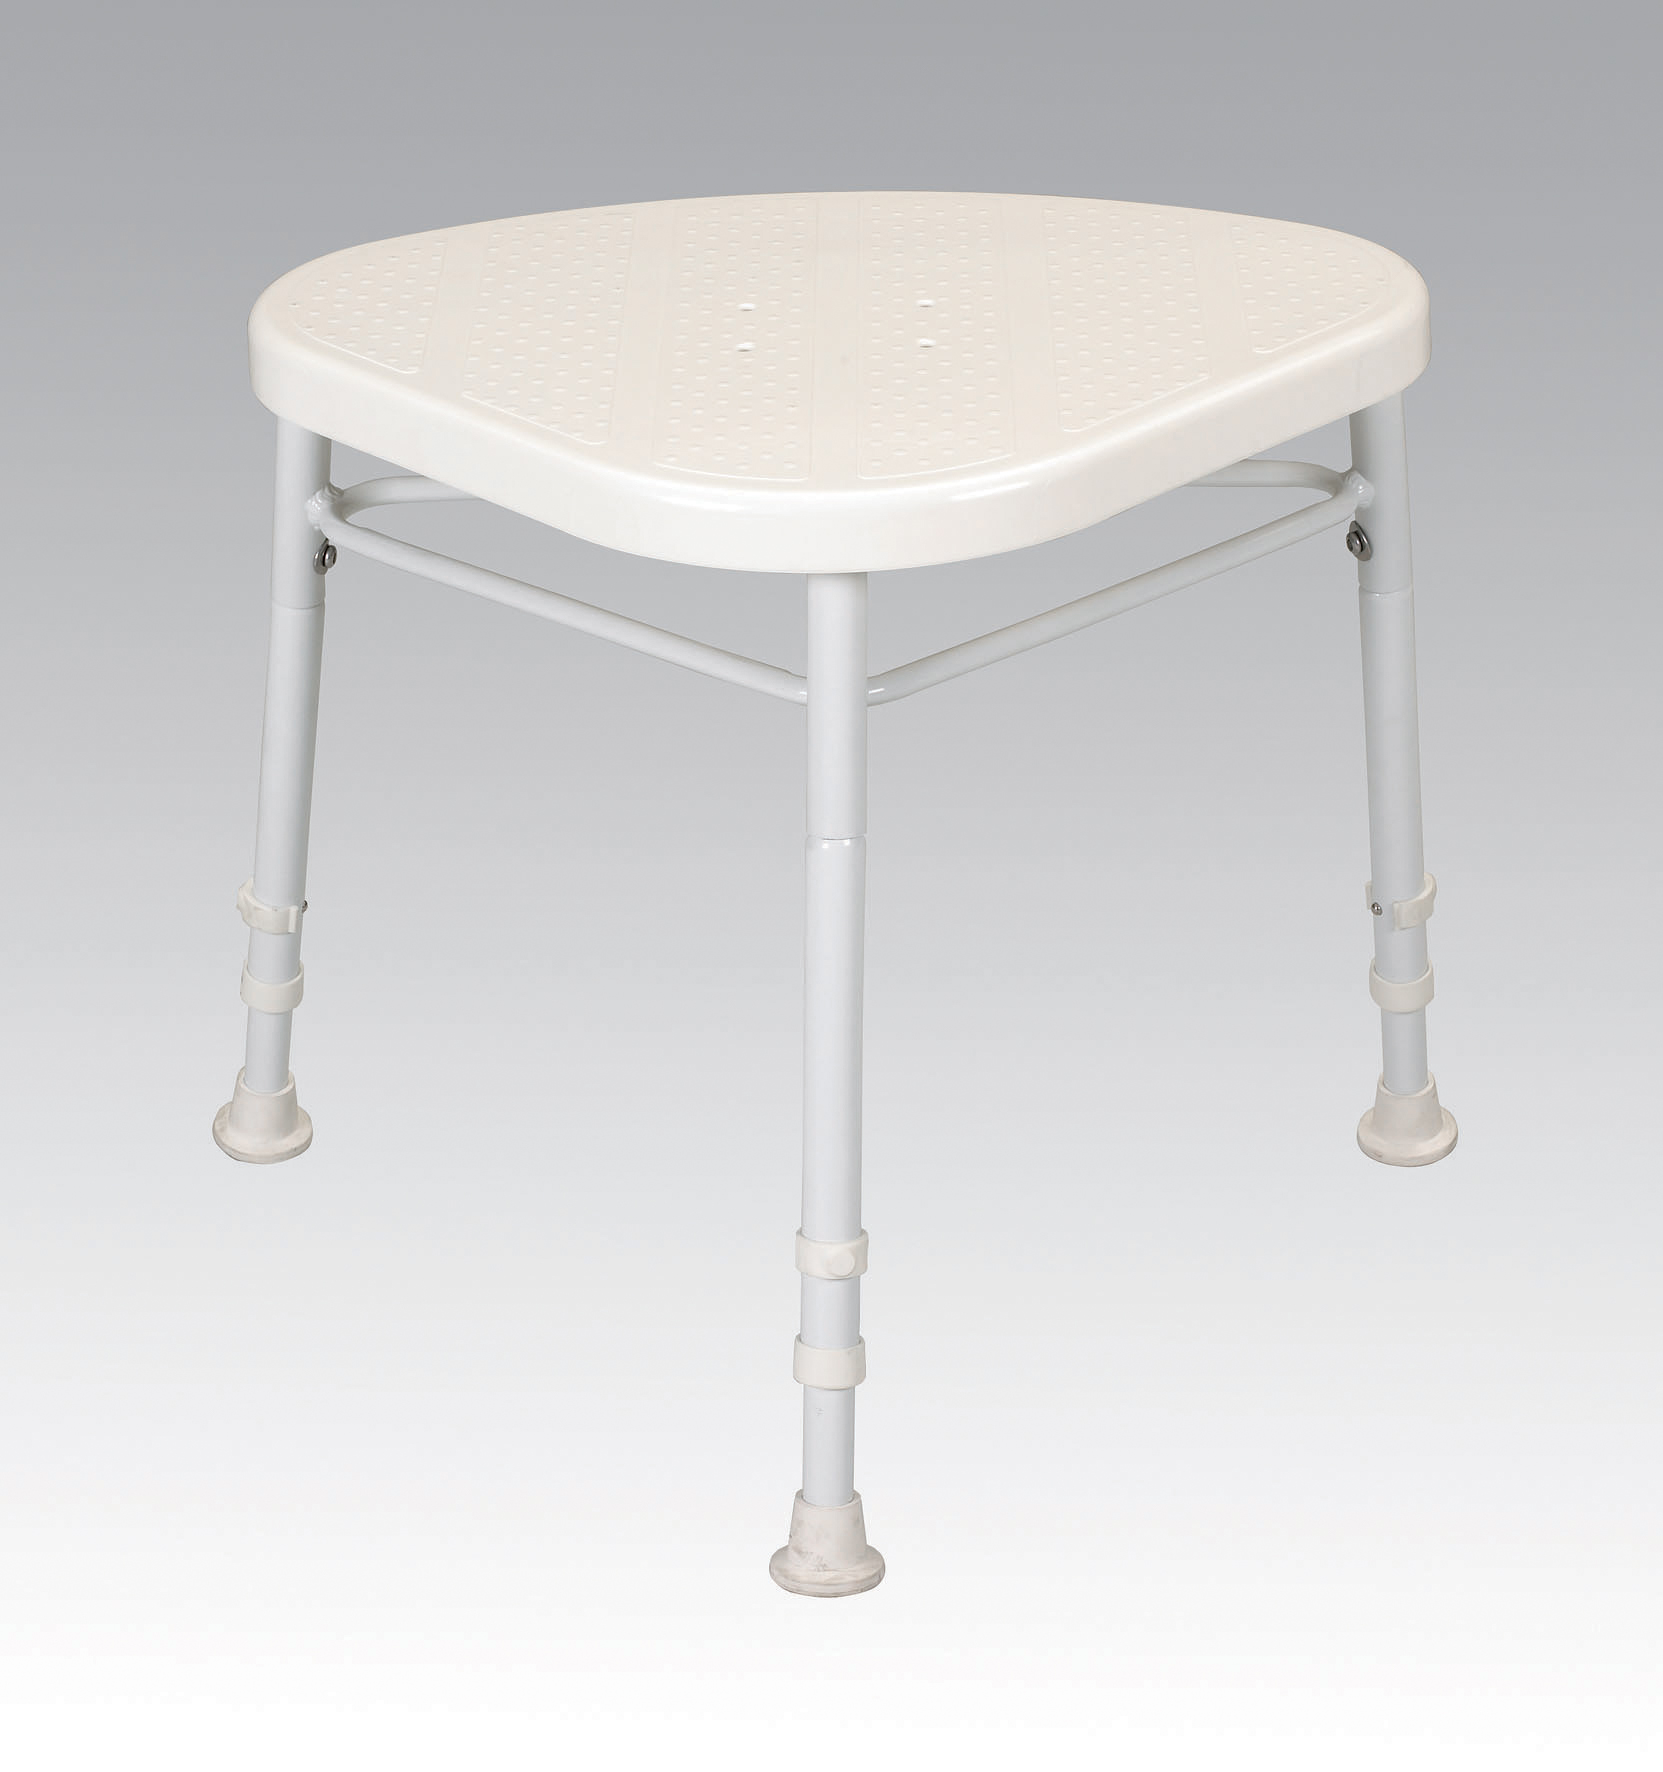 Picture of: White Line Corner Shower Stool Murrays Ie